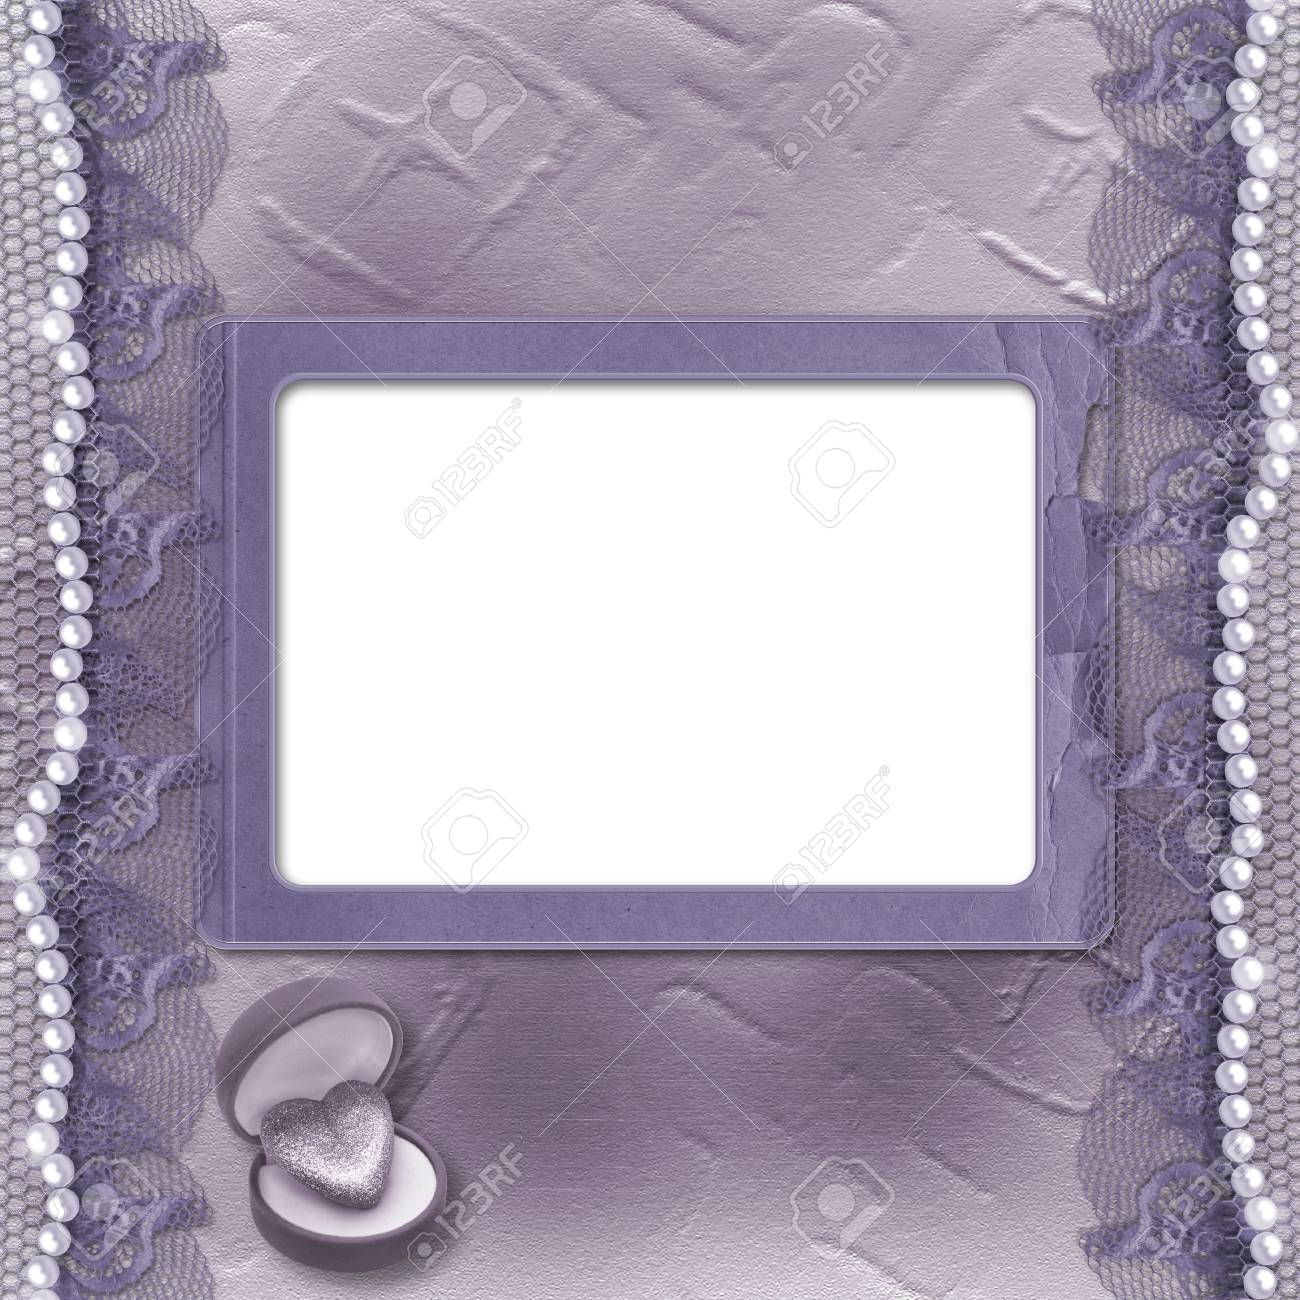 Grunge lilac card for invitation or congratulation with pearls and lace Stock Photo - 5552810